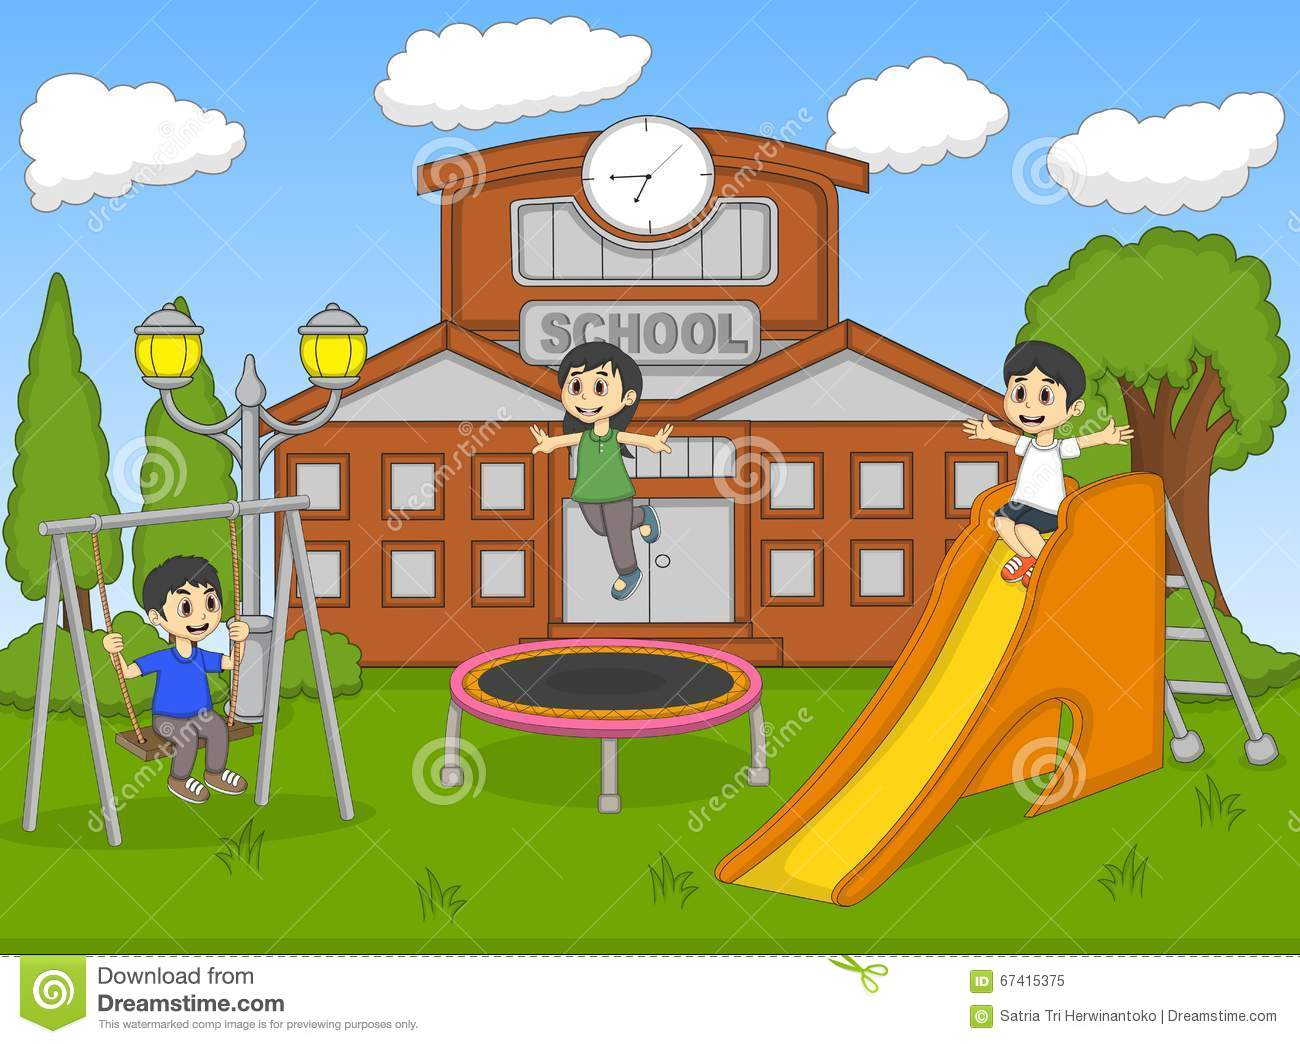 children playing at the school cartoon - Images Of Children Playing At School